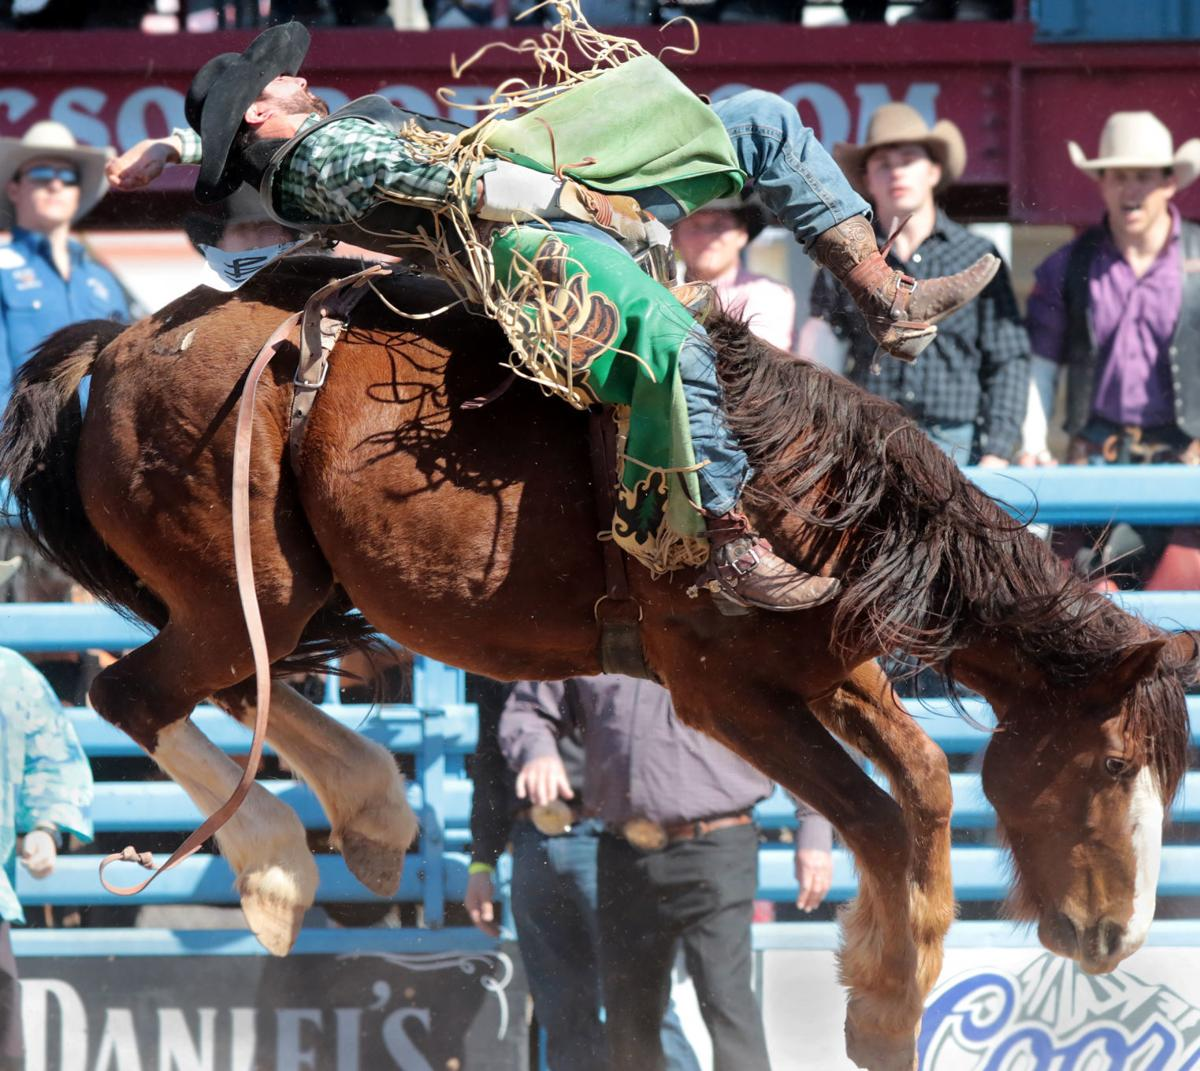 Devan Reilly Conquers Feisty Killer Bee To Win Bareback